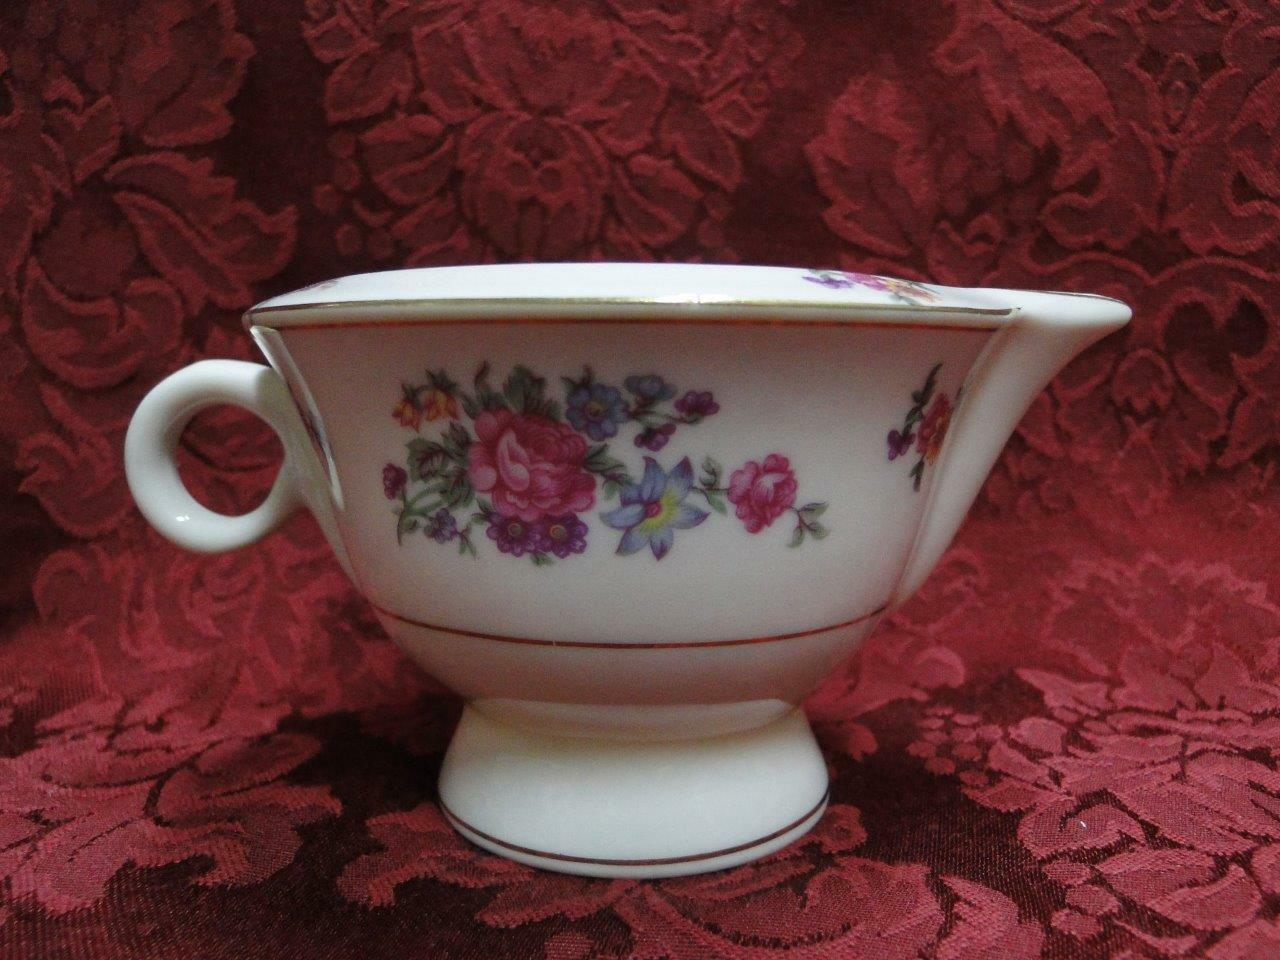 Haviland New York, Arlington, Roses, Flowers, Gold Trim: Cream Pitcher 2 3/4""